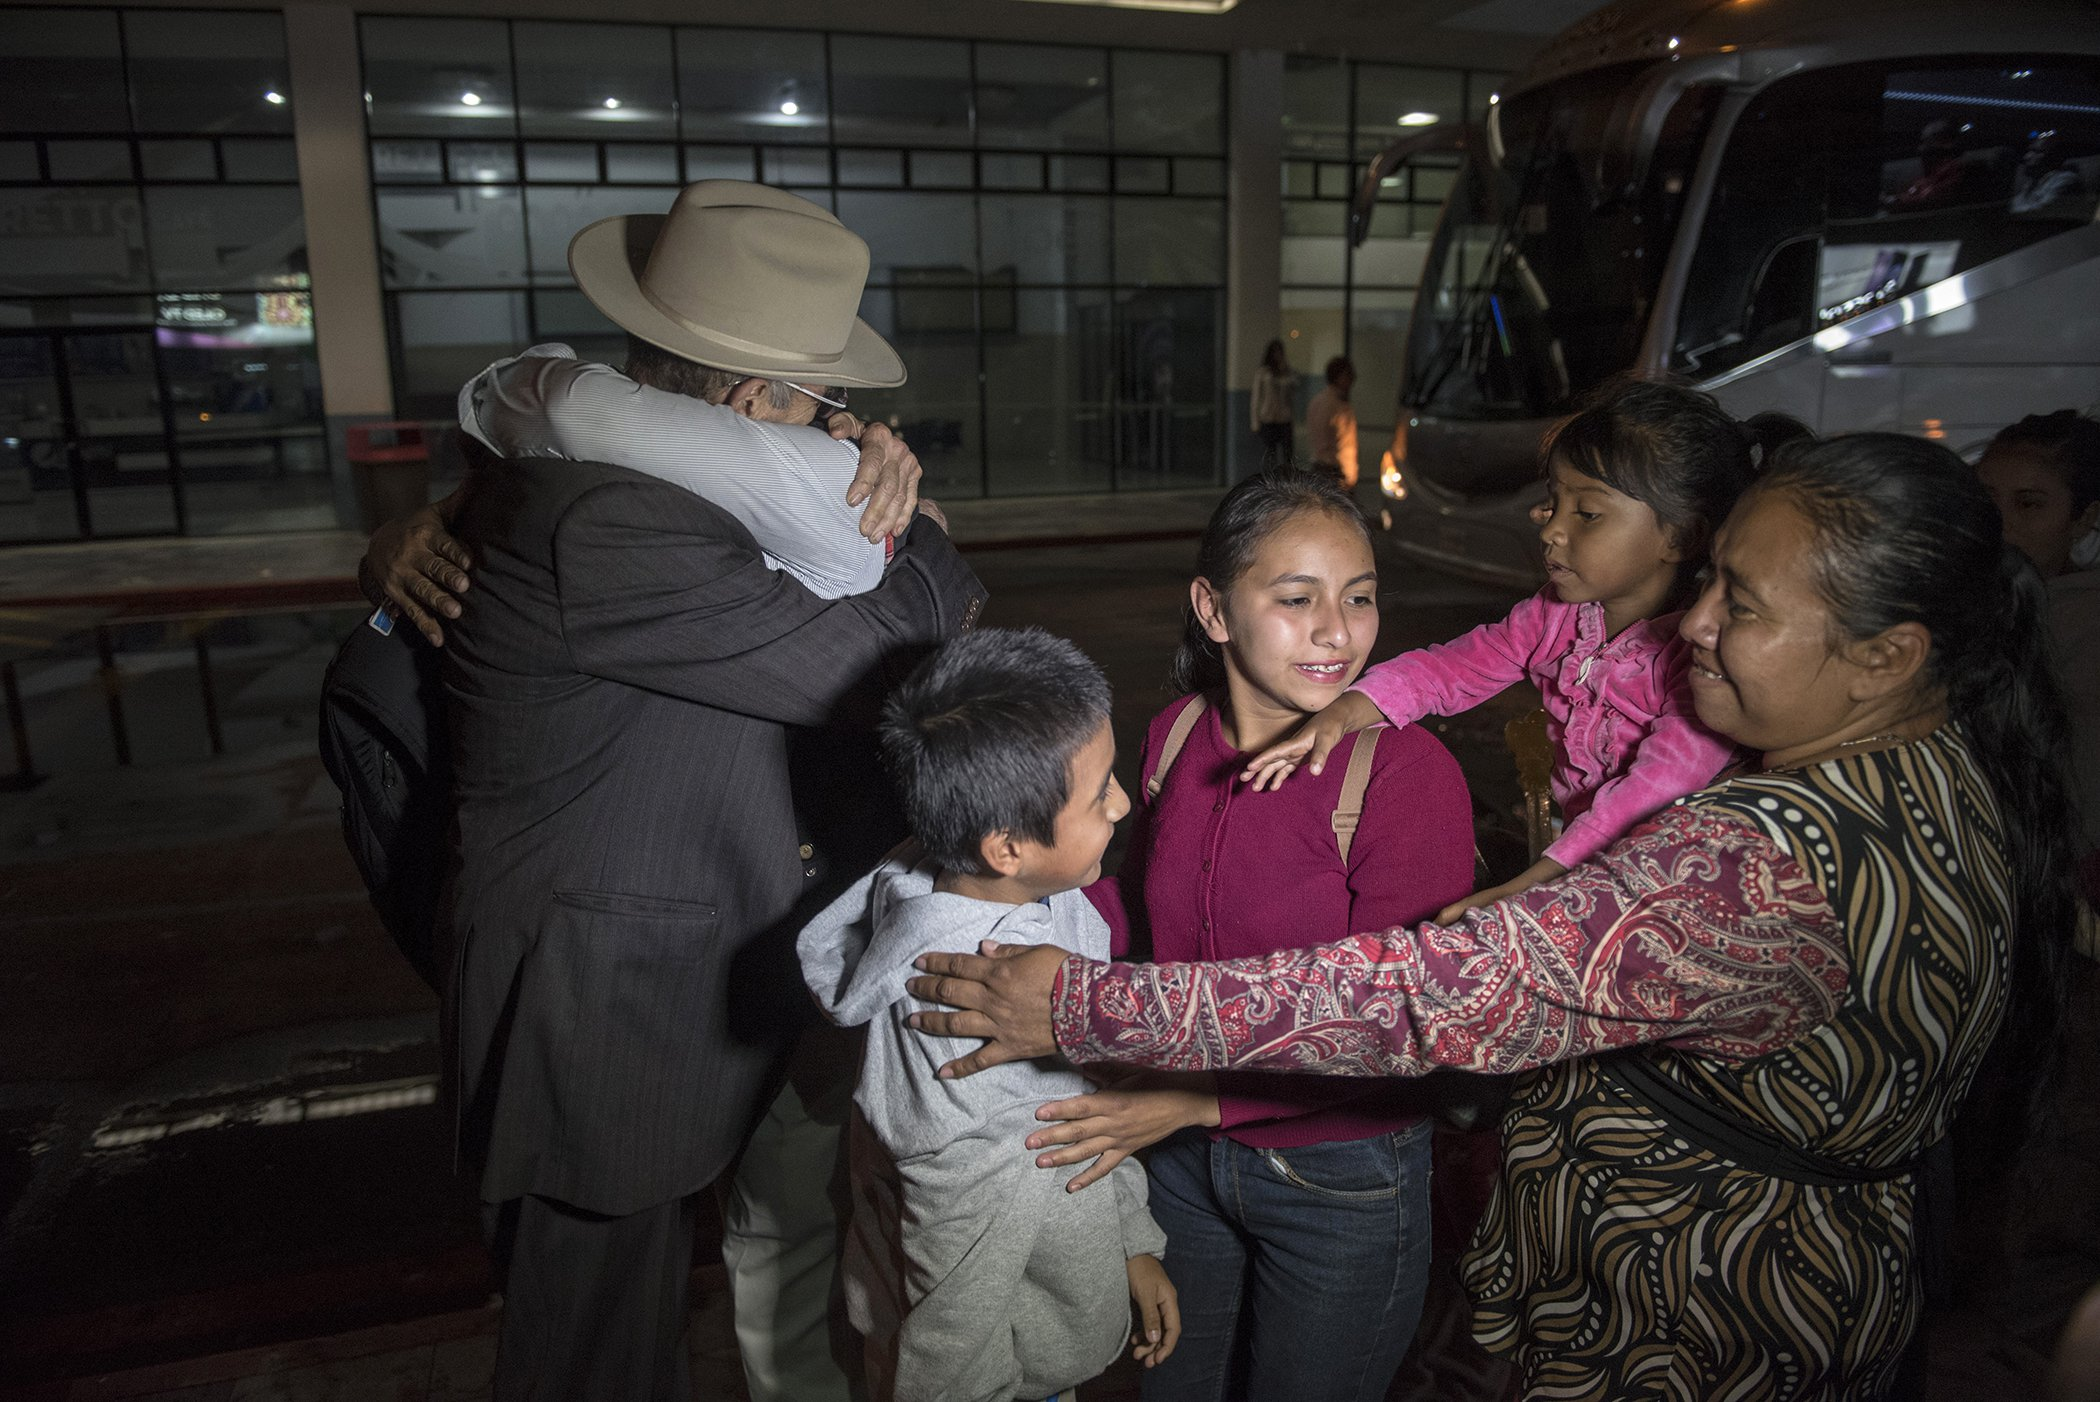 Guatemala-Separated-Families-Immigration-US.jpg